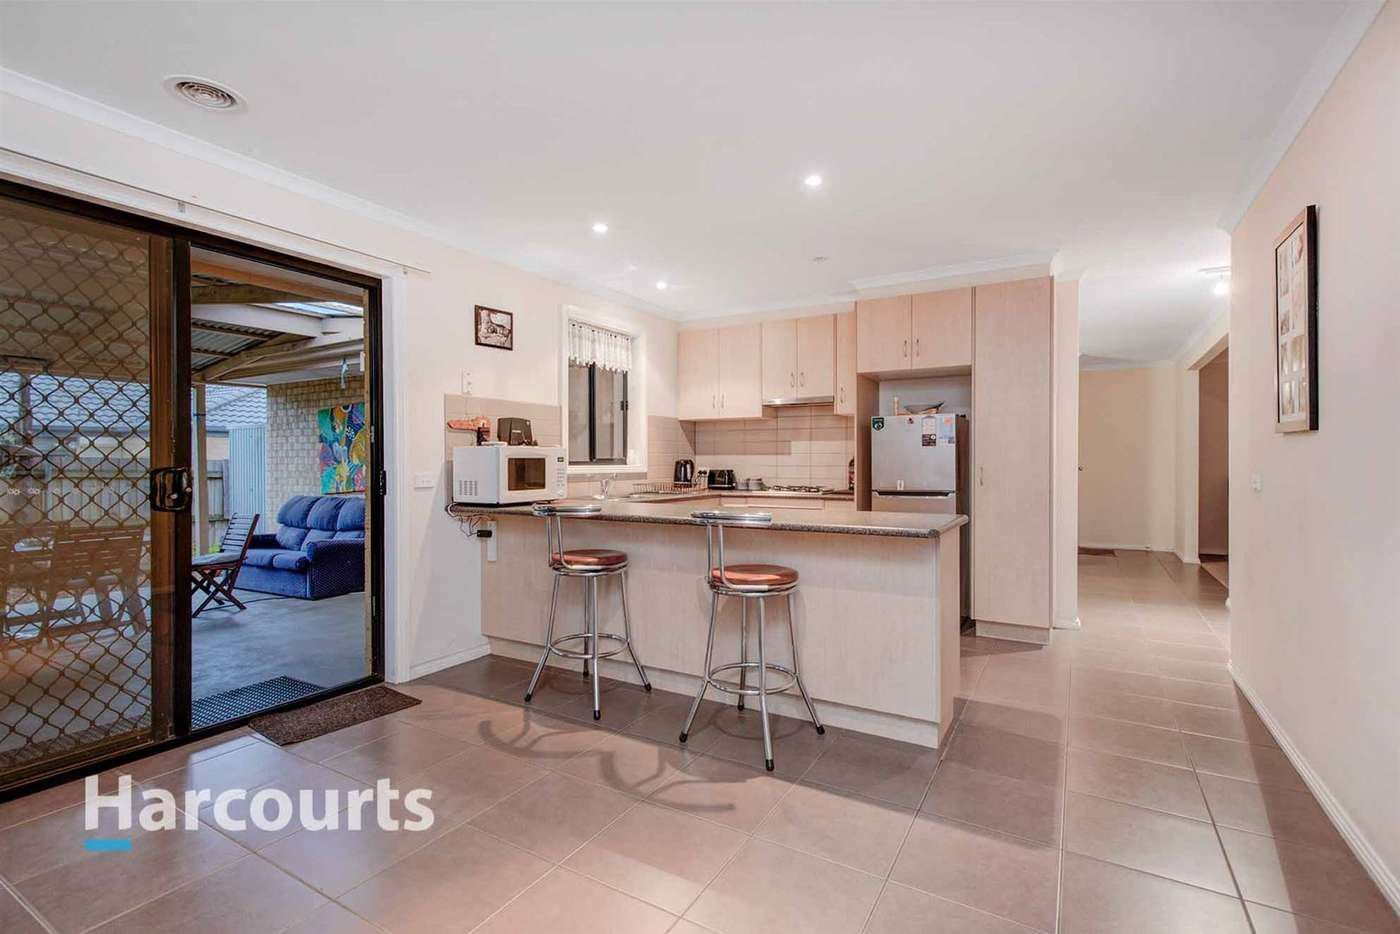 Fifth view of Homely house listing, 4 Victor Drive, Hastings VIC 3915